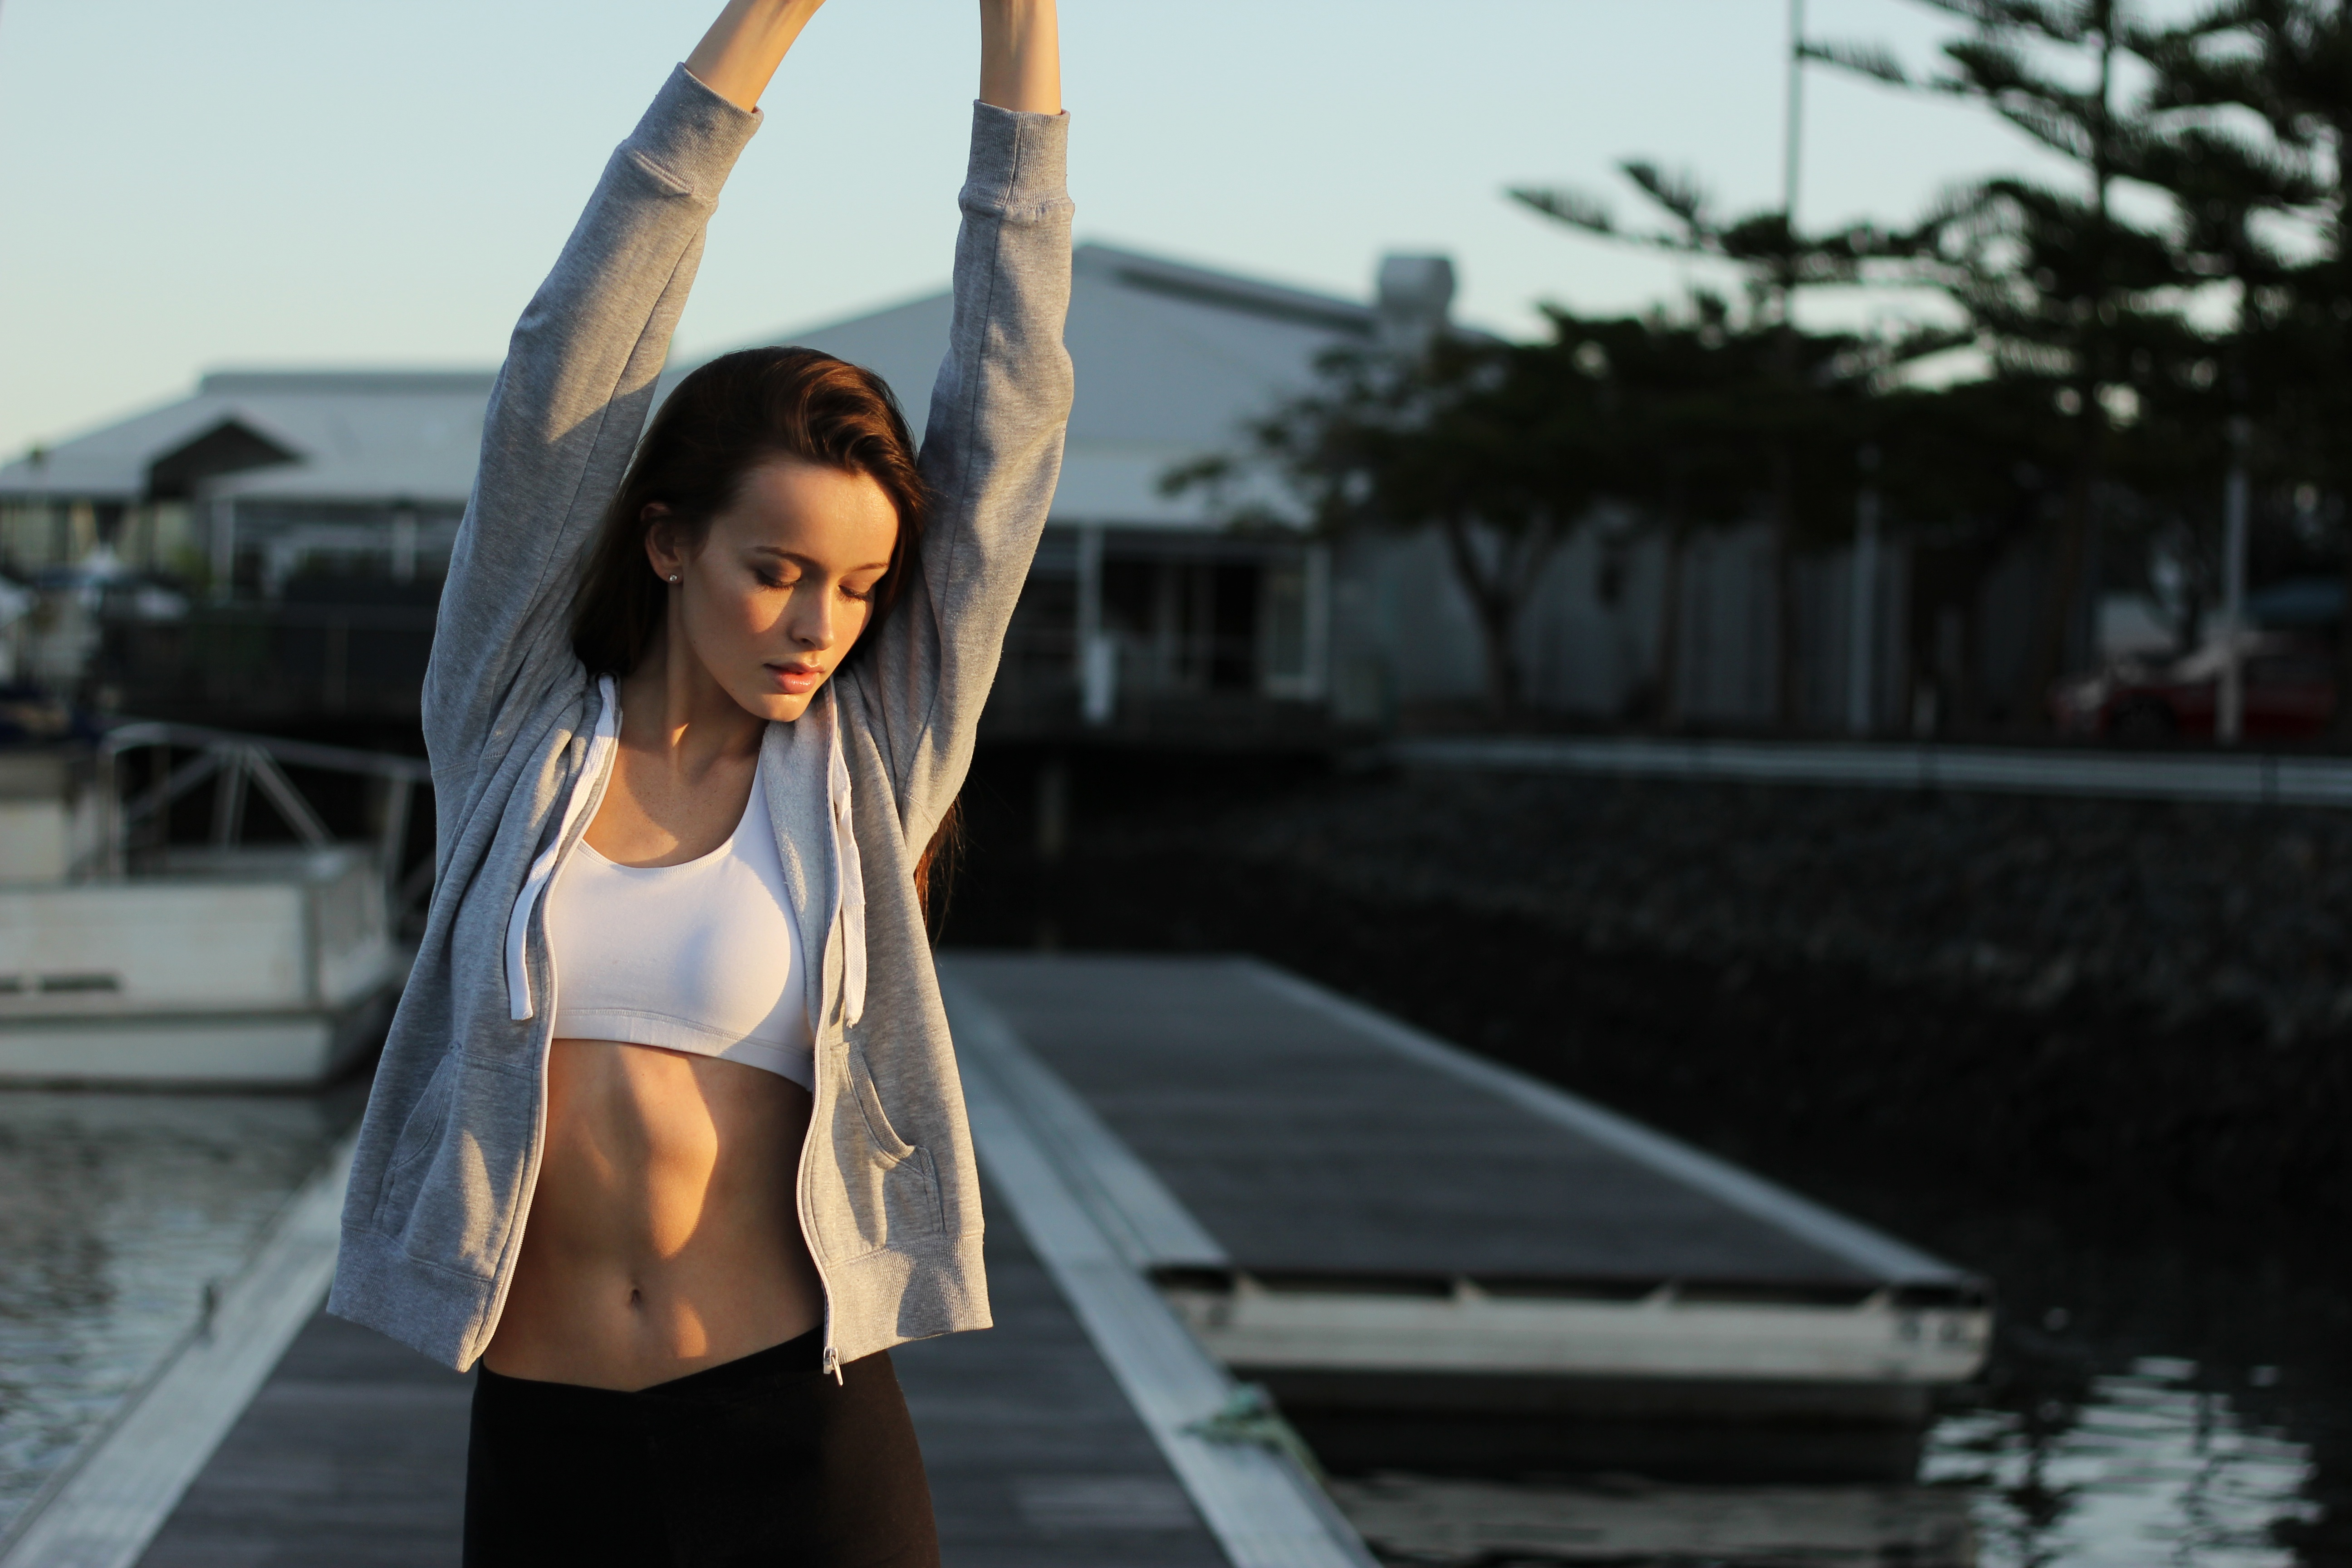 7 Tips To Find Time To Exercise When You're Busy